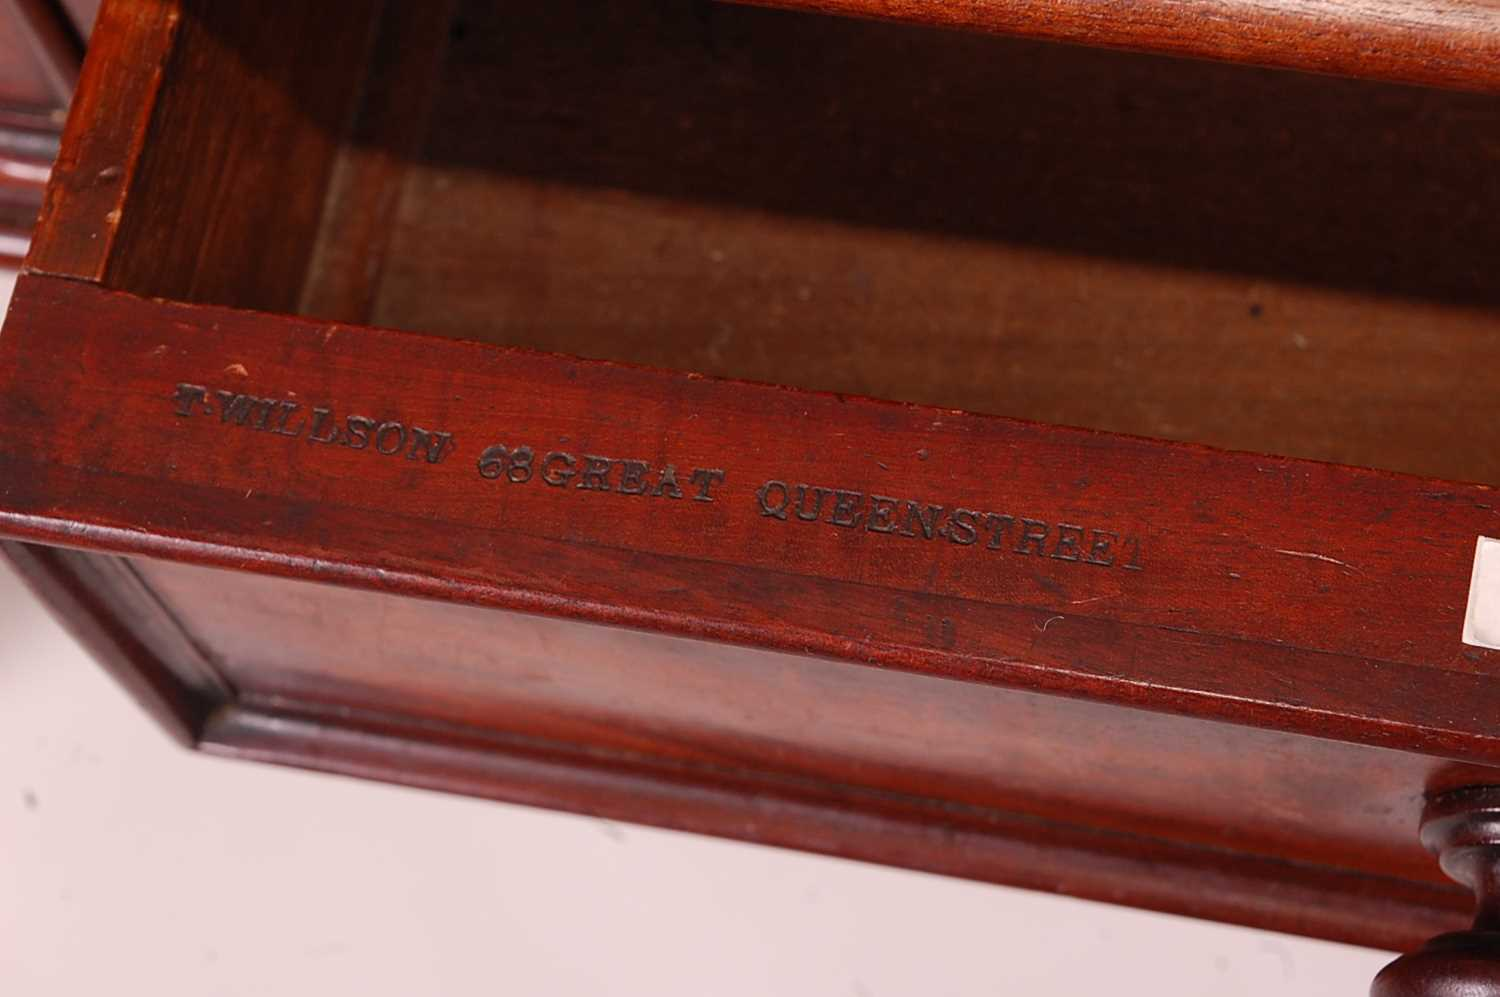 A Victorian mahogany side table by T. Willson of Great Queen Street, London, stamped to the frieze - Image 3 of 5